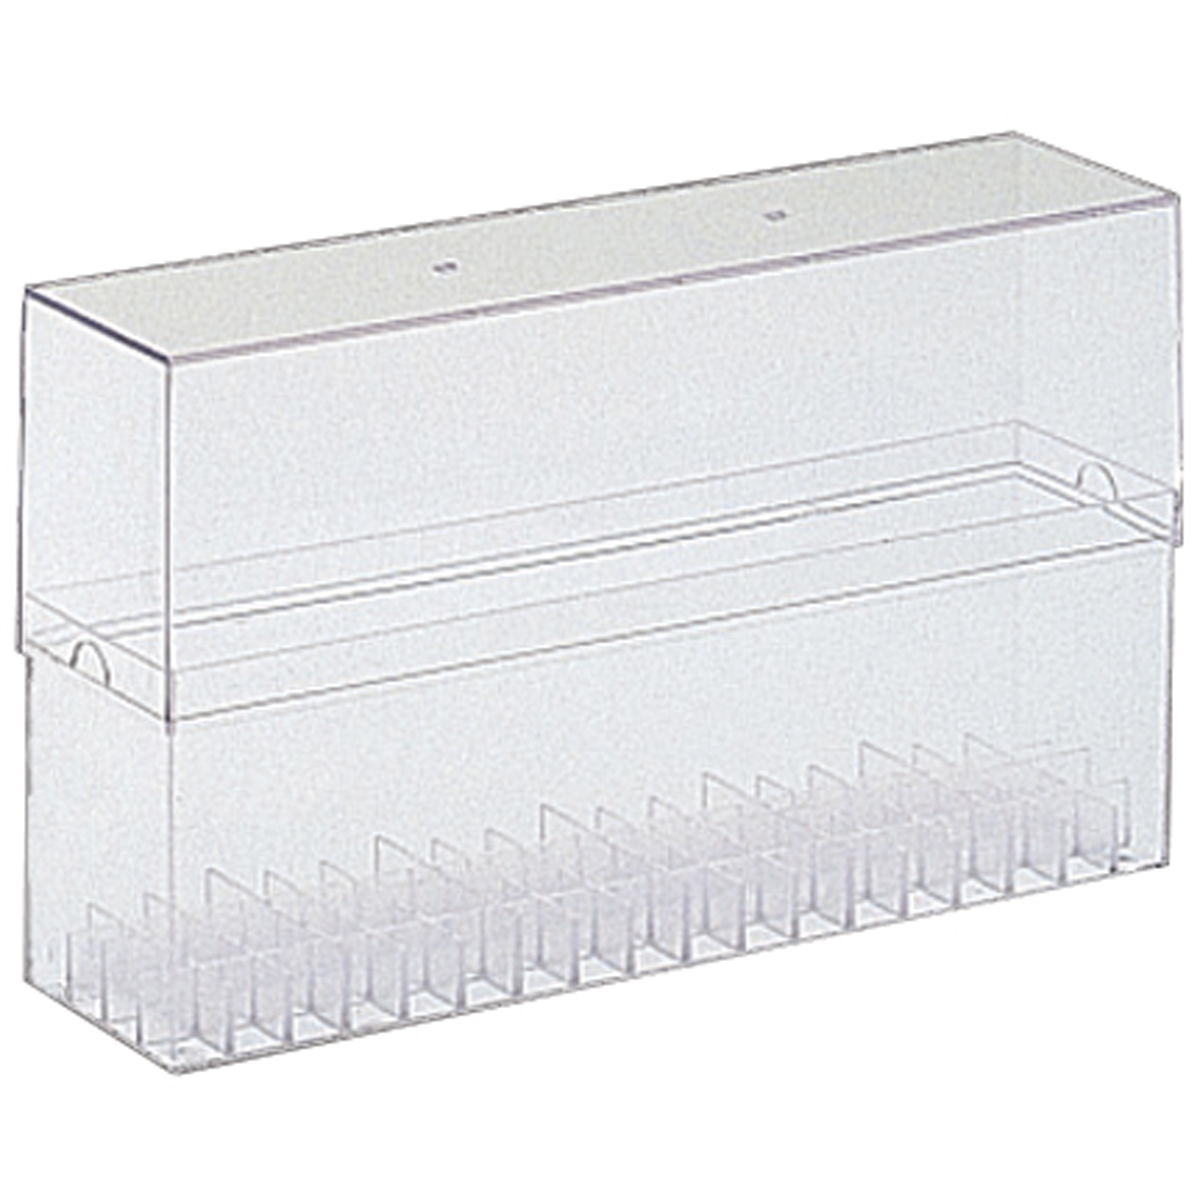 Copic Sketch Marker Case - Empty-Holds 72